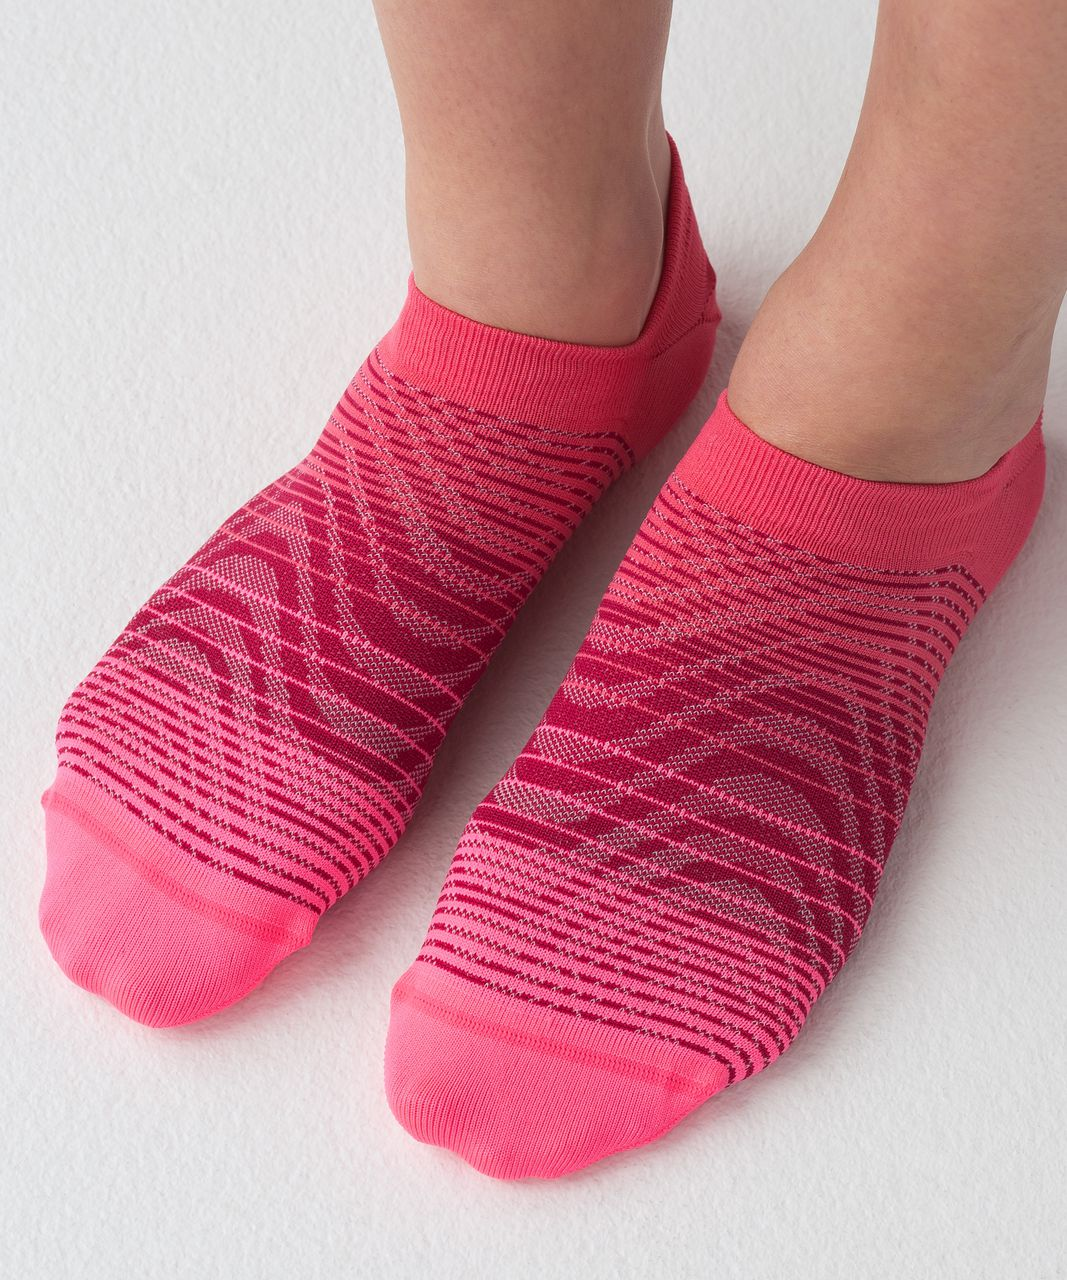 Lululemon Play All Day Sock - Neon Pink / Ruby Red / Lip Gloss